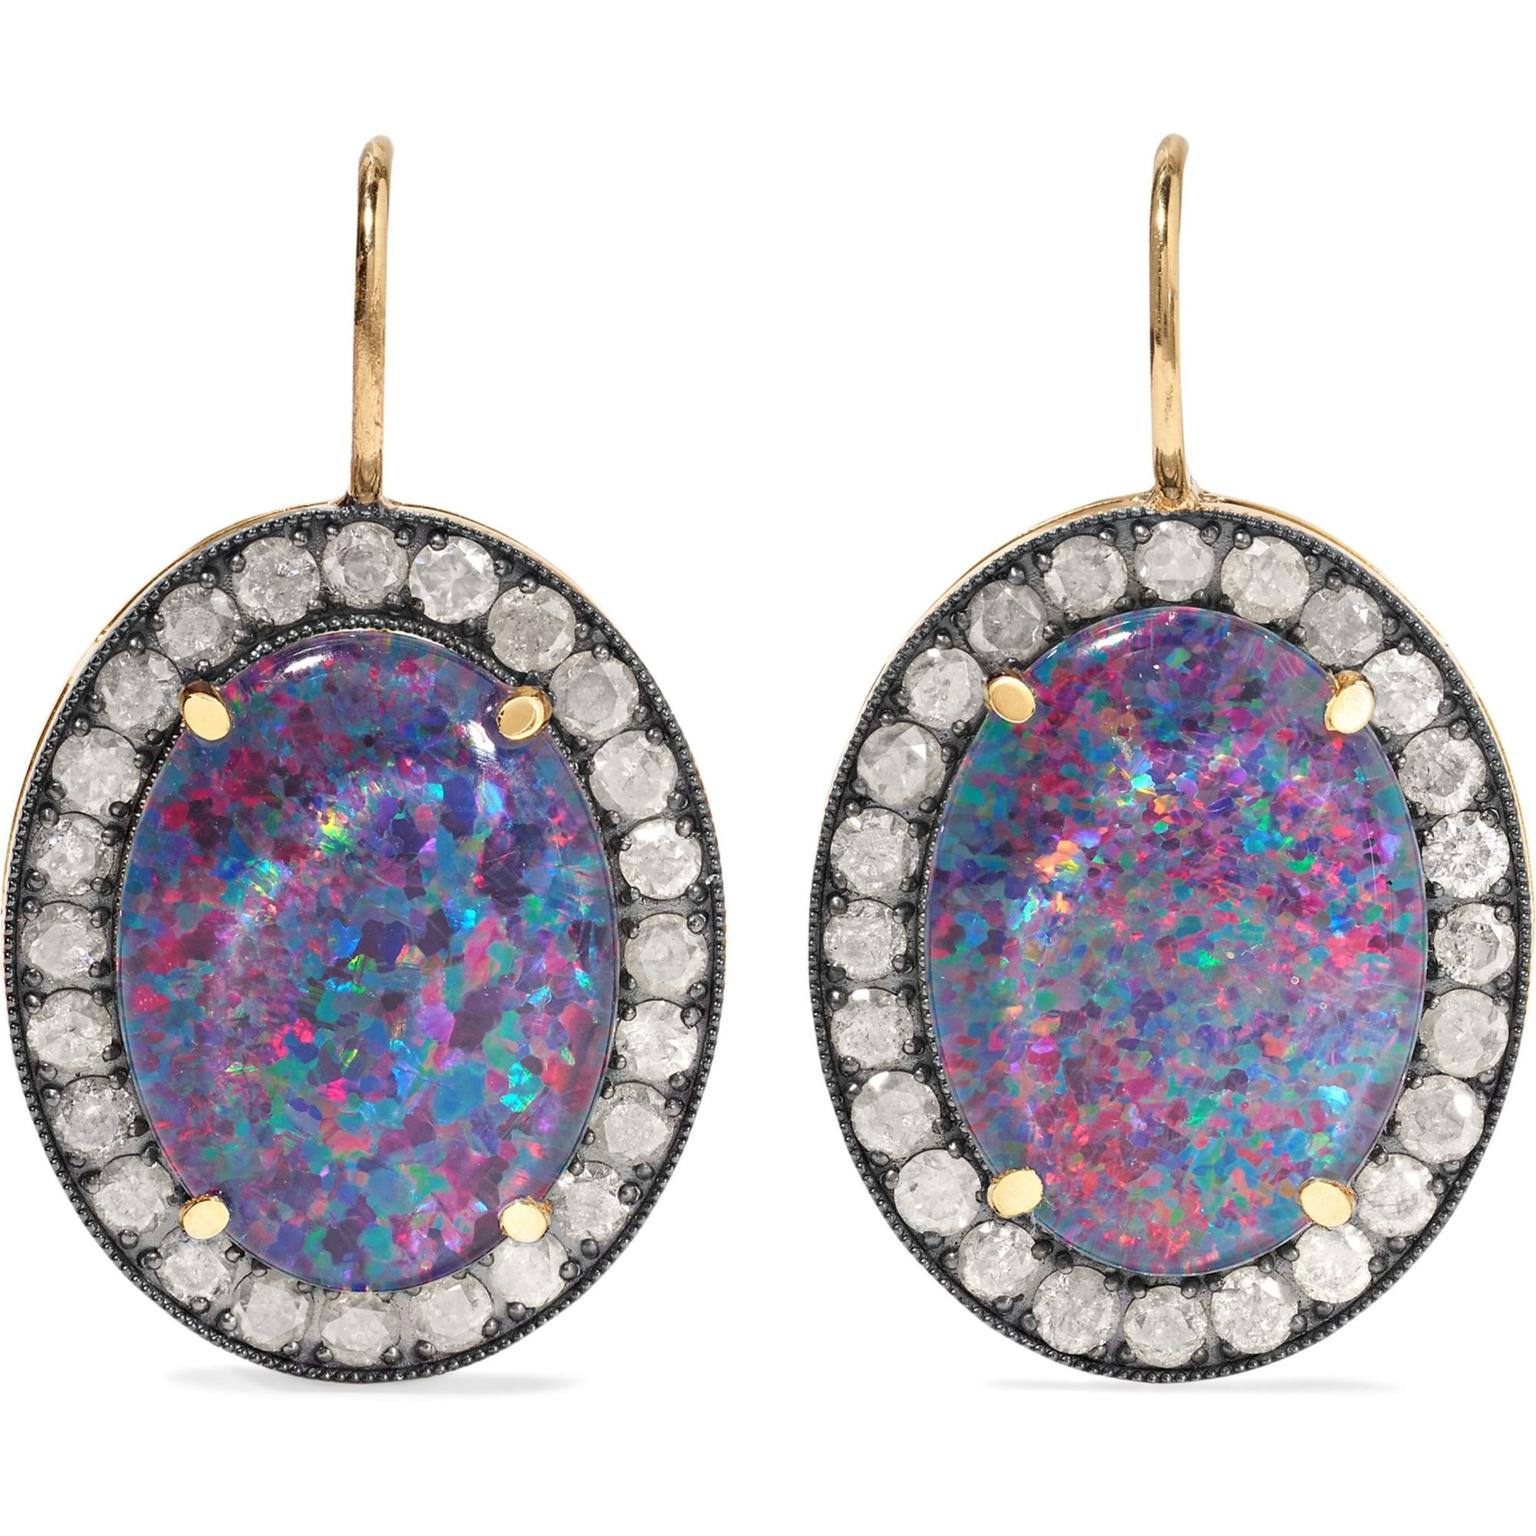 Andrea Fohrman 18-karat gold, opal and diamond earrings Still